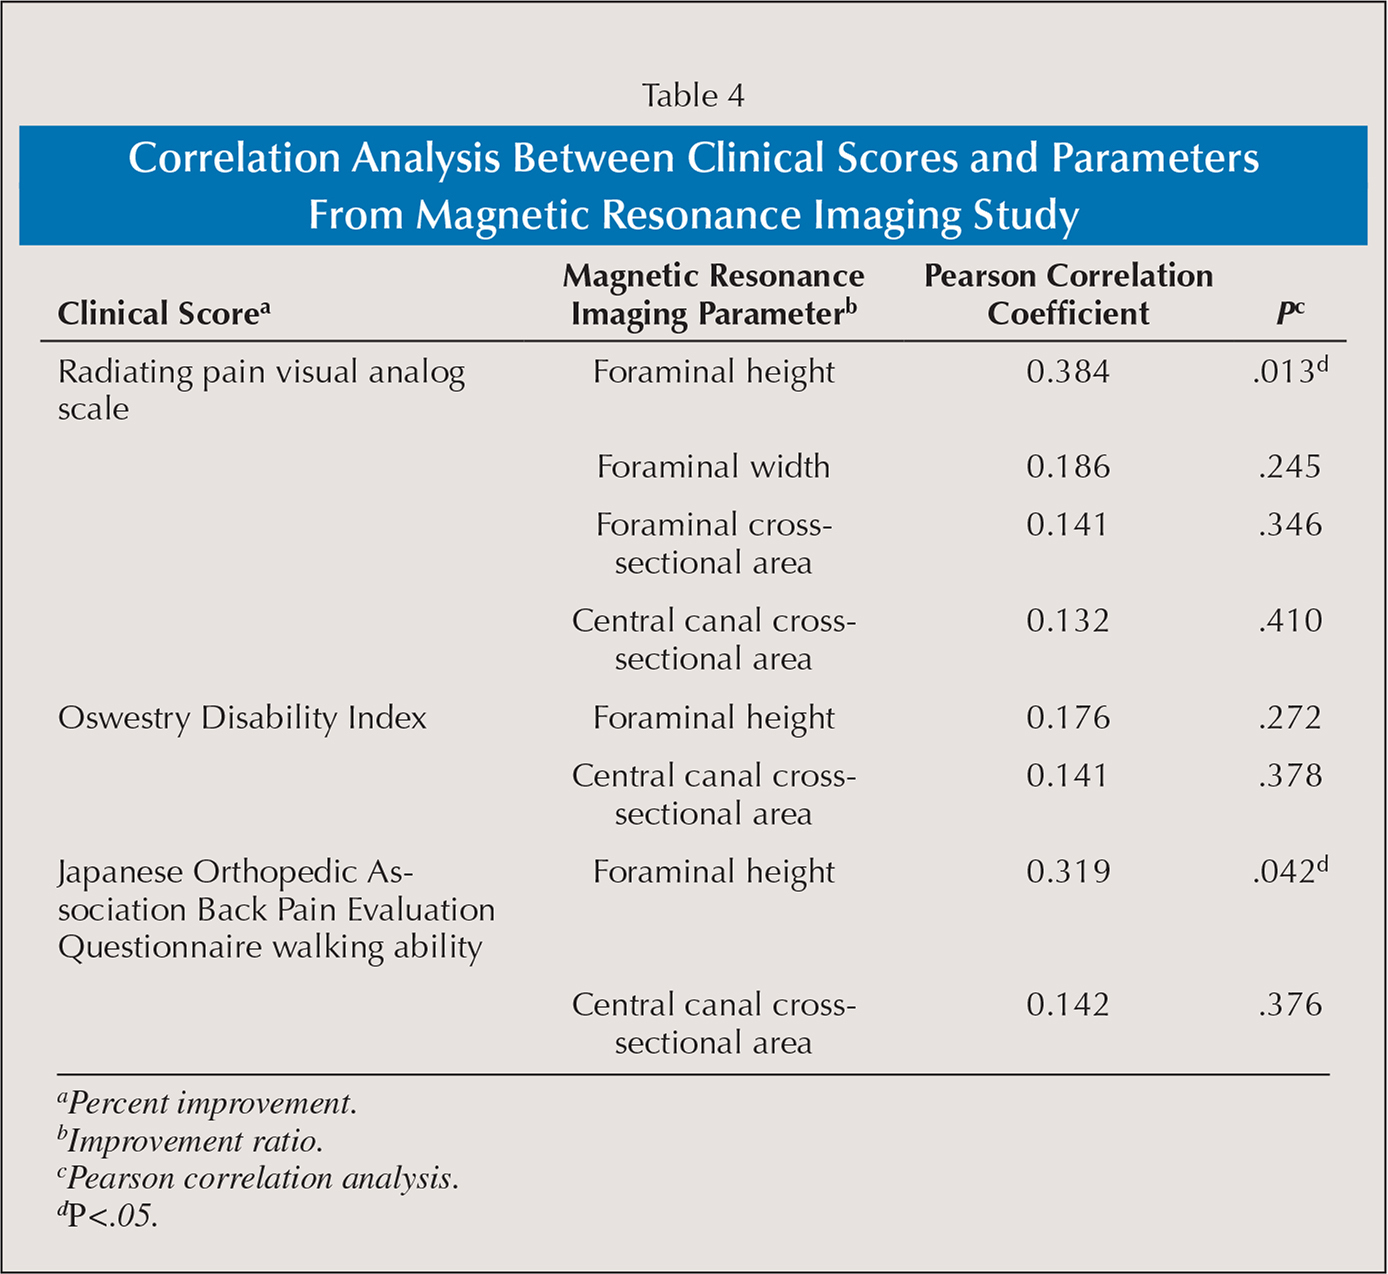 Correlation Analysis Between Clinical Scores and Parameters From Magnetic Resonance Imaging Study